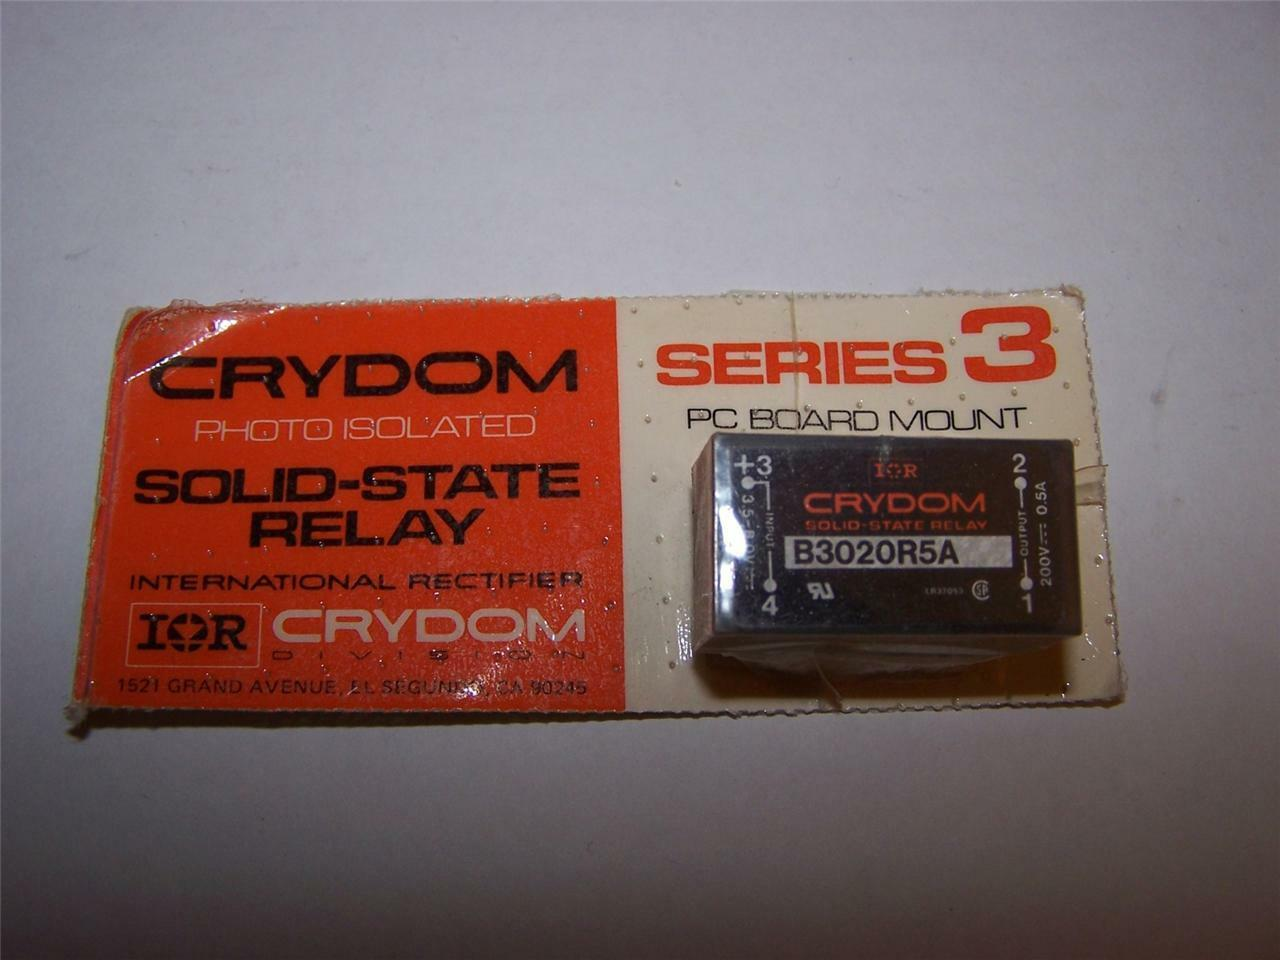 Crydomir B3020R5A Solidstate Relay PC Board Mount 200v 05a EBay - Solid State Relay Ir